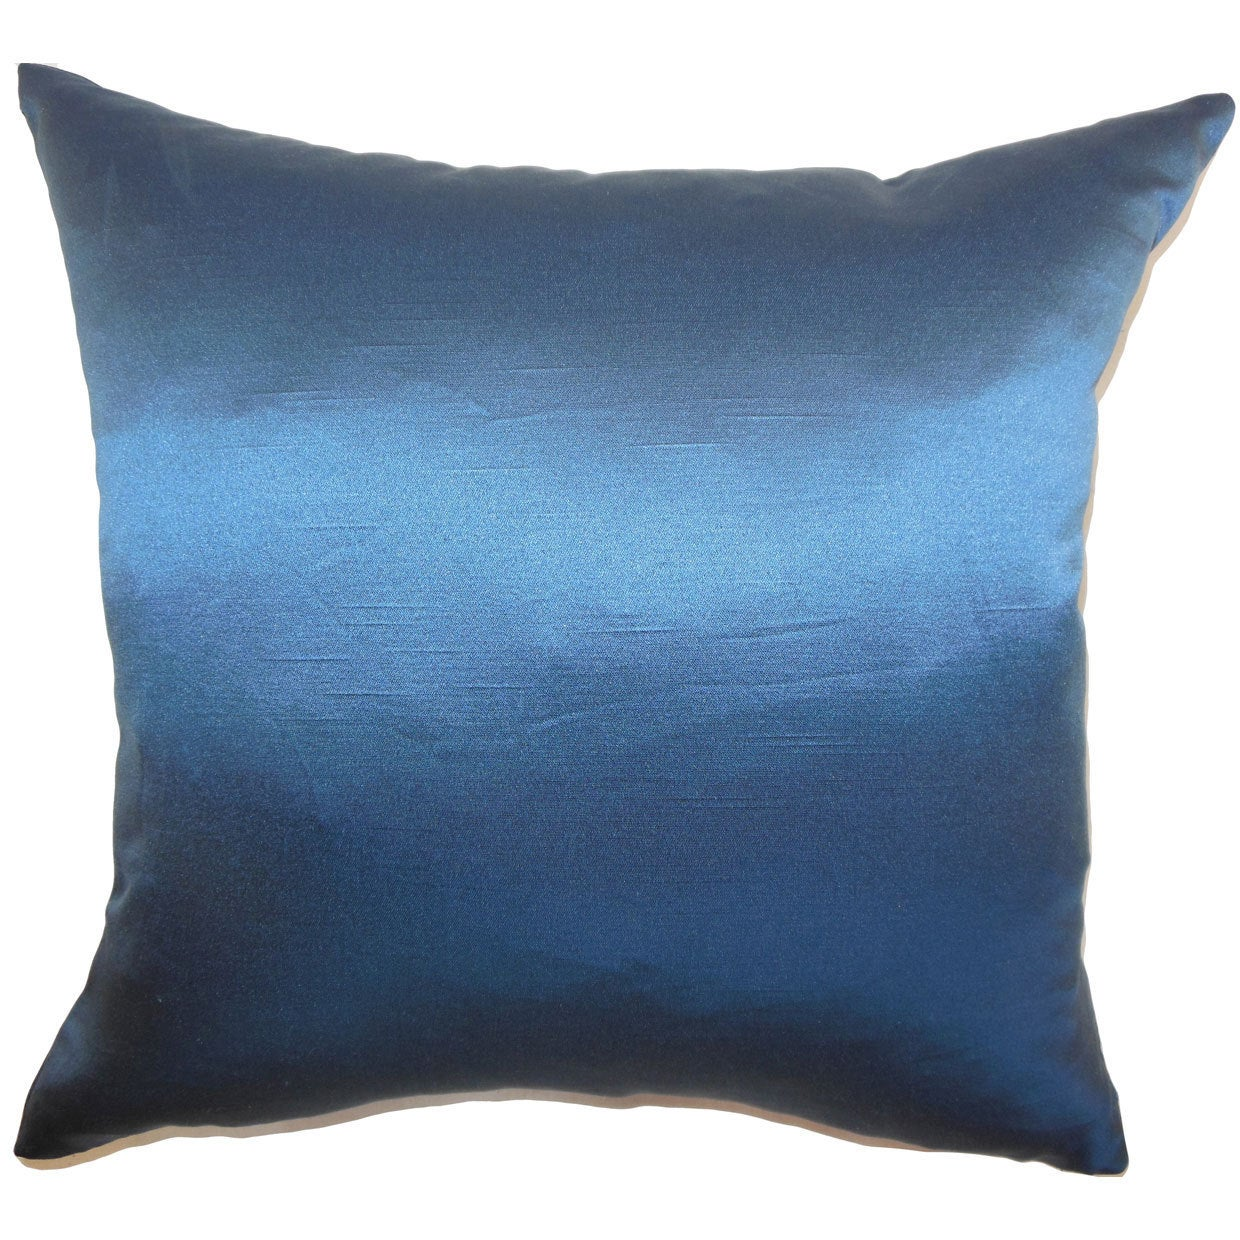 Karsen Solid 24-inch  Feather Throw Pillow Navy (24 x 24)